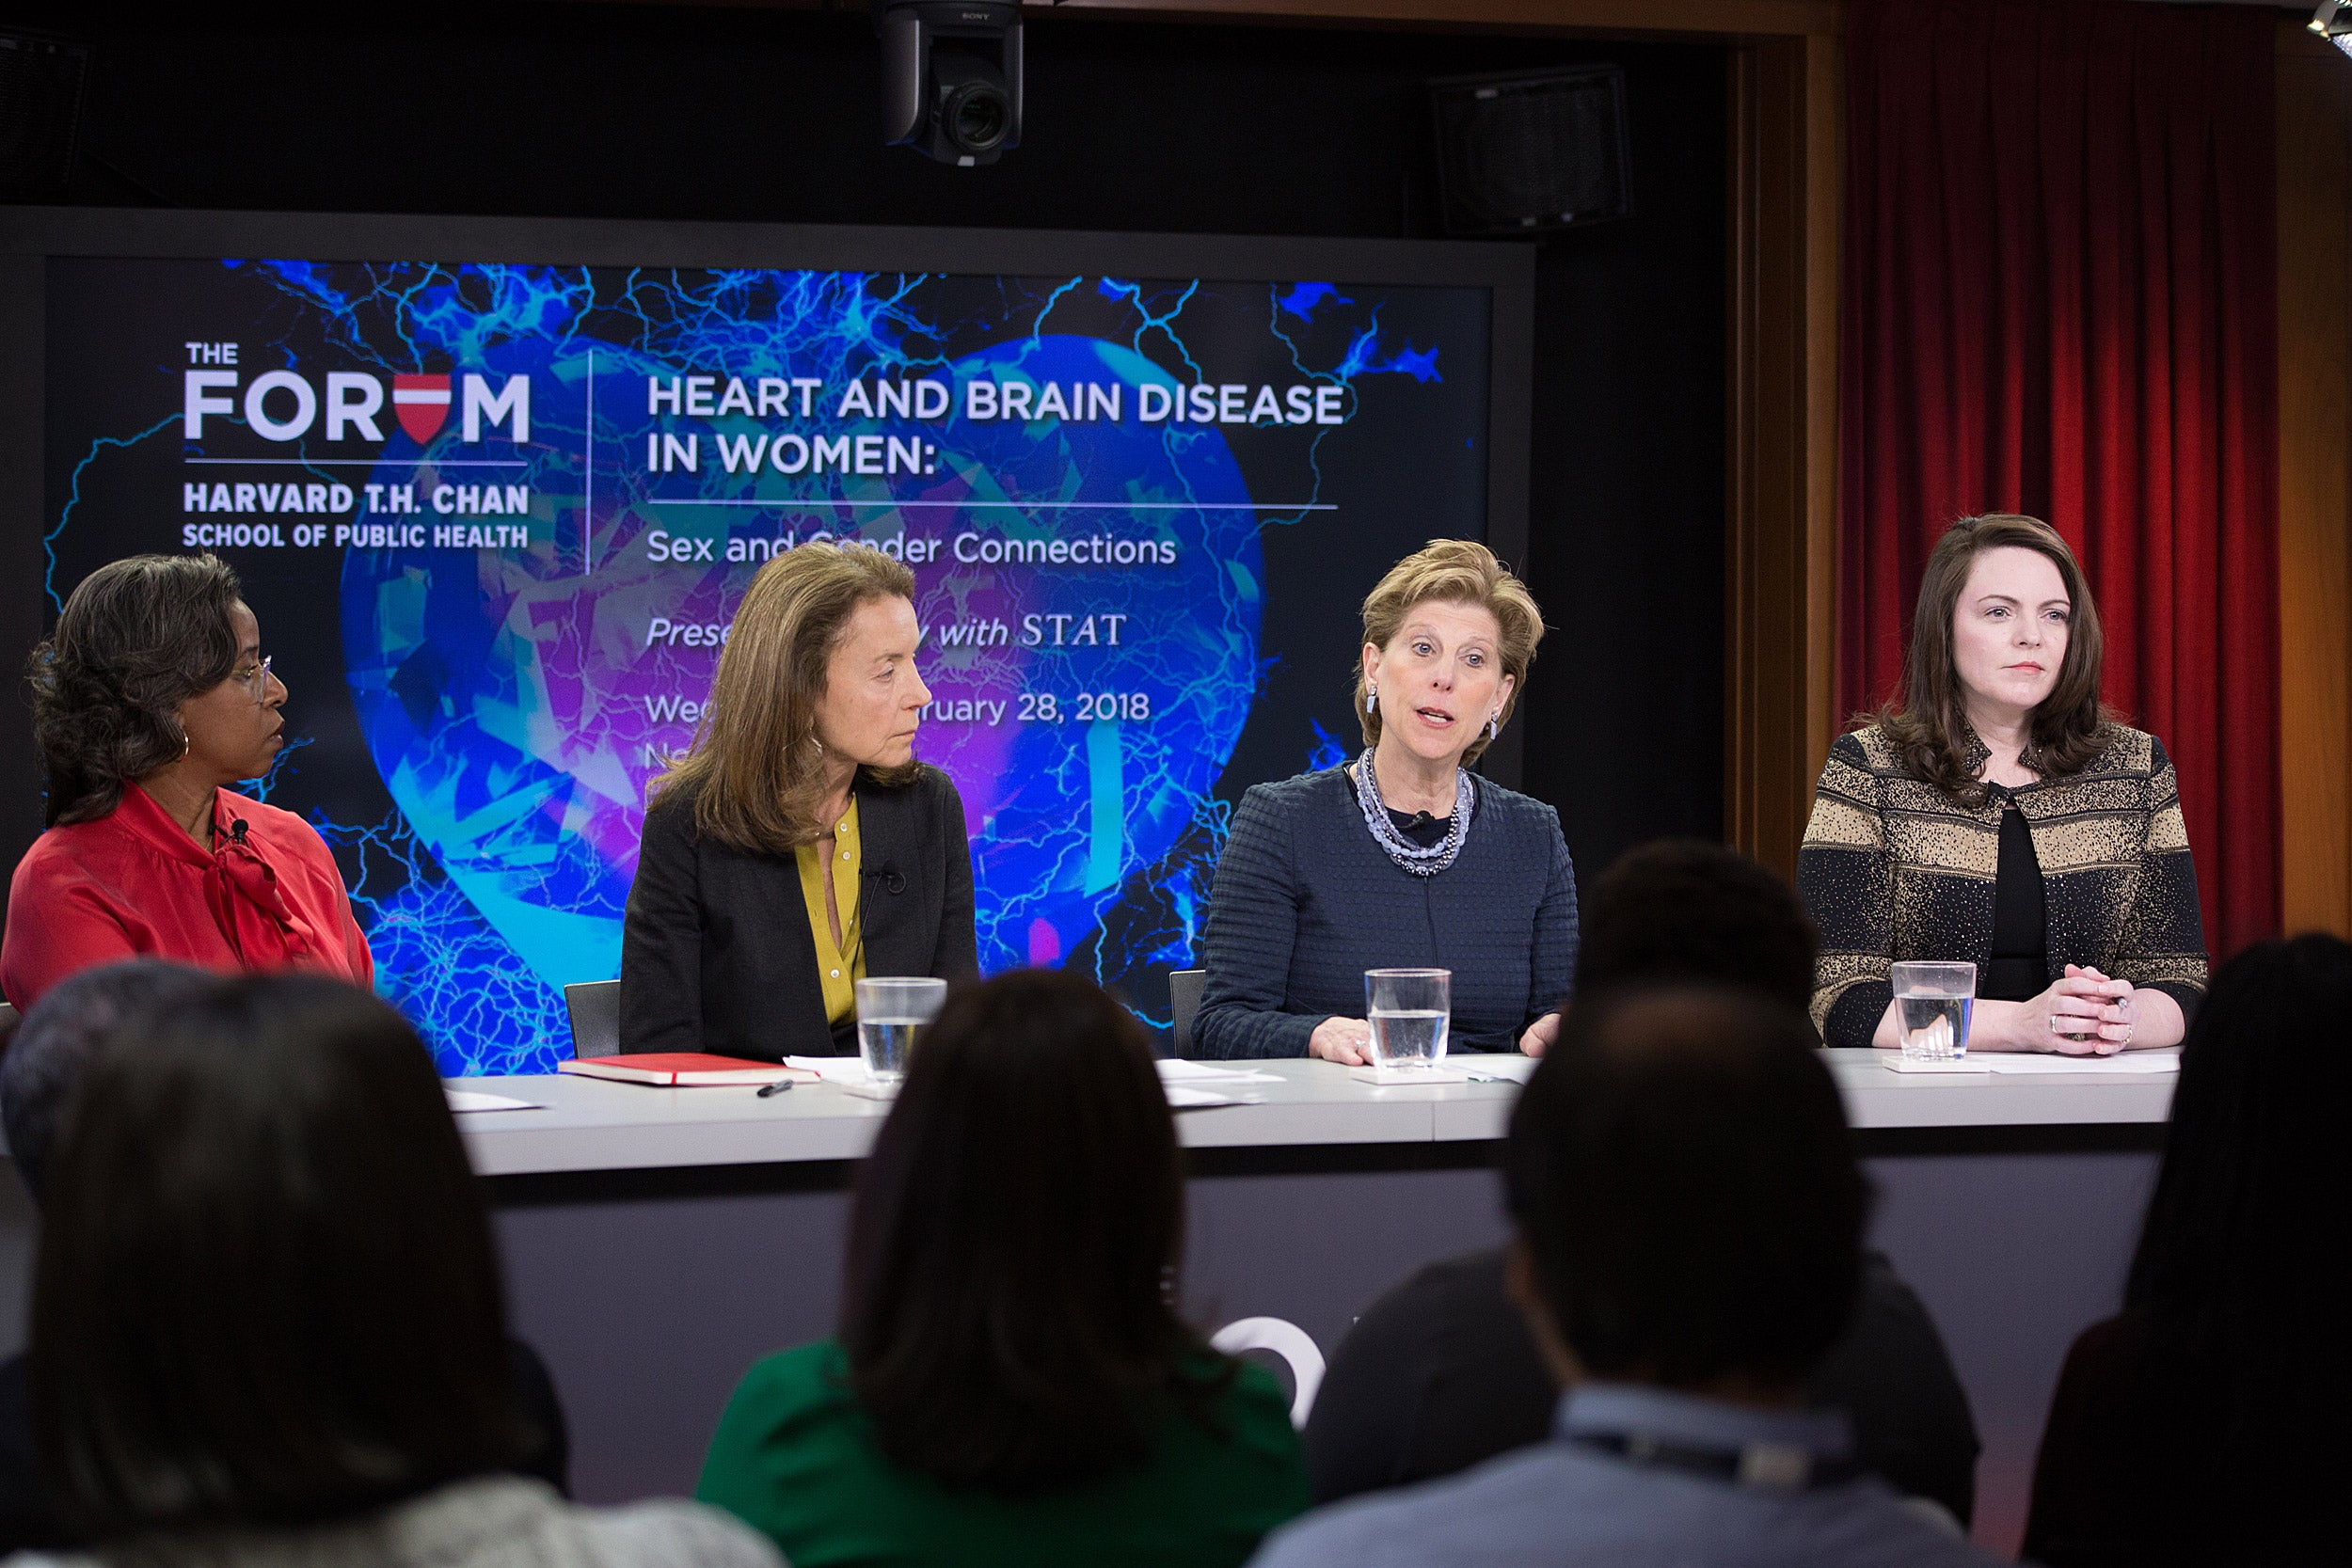 Despite progress in recognizing and incorporating sex-based differences in the health of men and women, work remains, contend panelists British Robinson, Ana Langer, Jill Goldstein, Marjorie Jenkins, with moderator Sharon Begley.